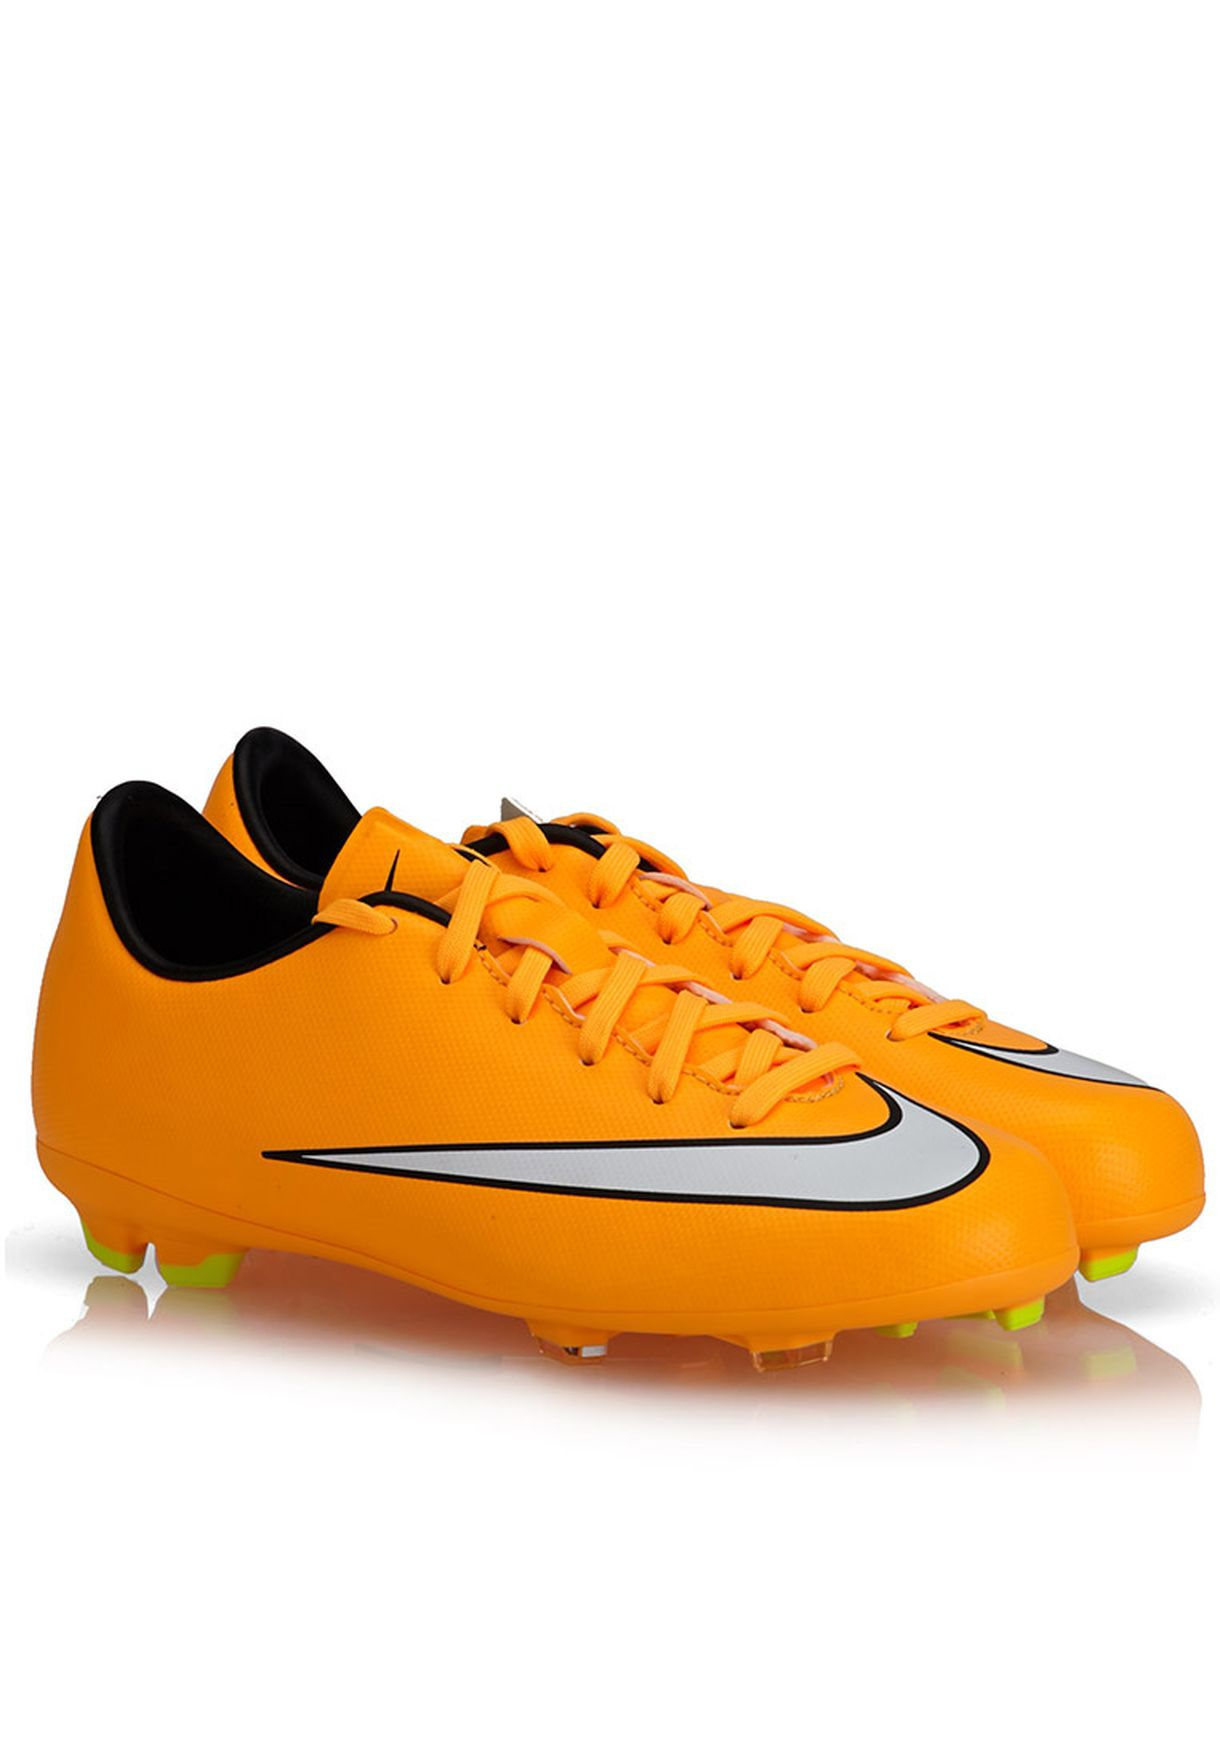 6a26c098264 Shop Nike yellow Mercurial Victory FG 651634-800 for Kids in UAE ...